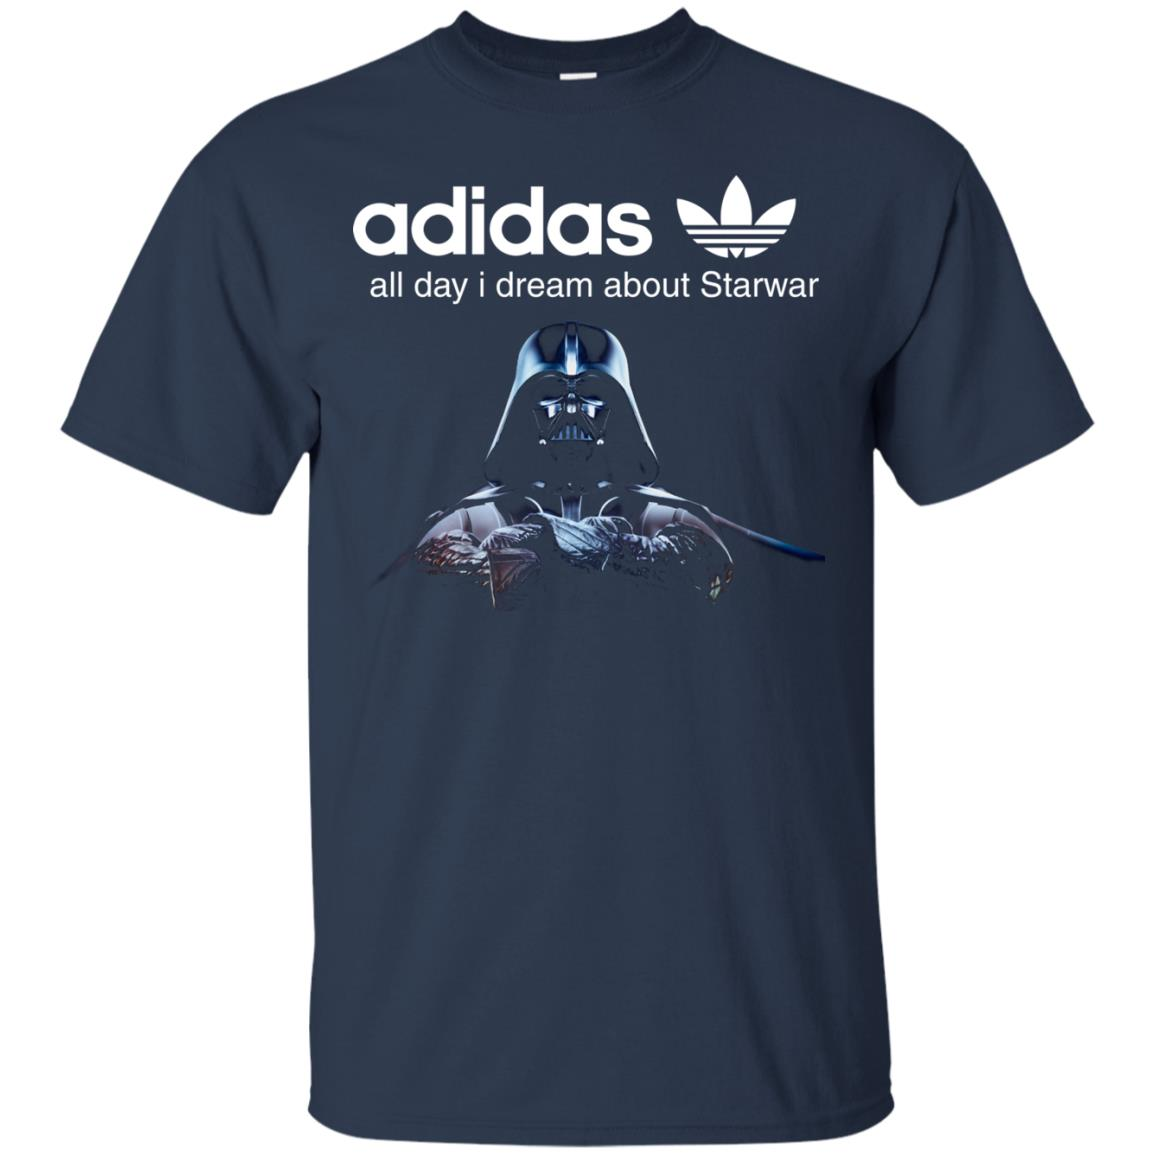 image 404px Adidas all day I dream about Starwar t shirts, hoodies, tank top